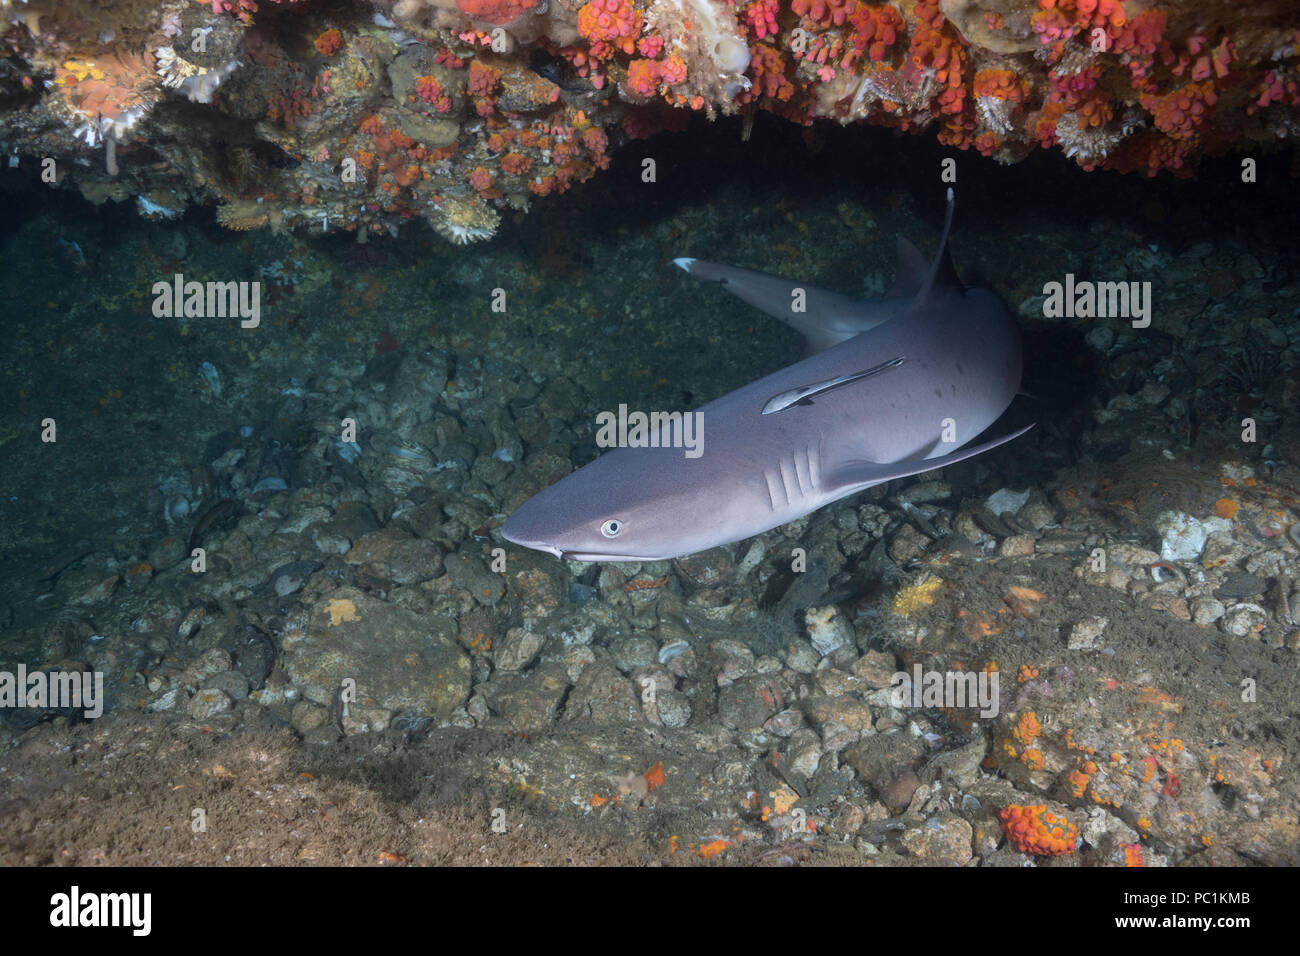 whitetip reef shark, Triaenodon obesus, with small remora or suckerfish attached, under ledge of reef, Gato Island, off Malapascua, Cebu, Philippines  - Stock Image